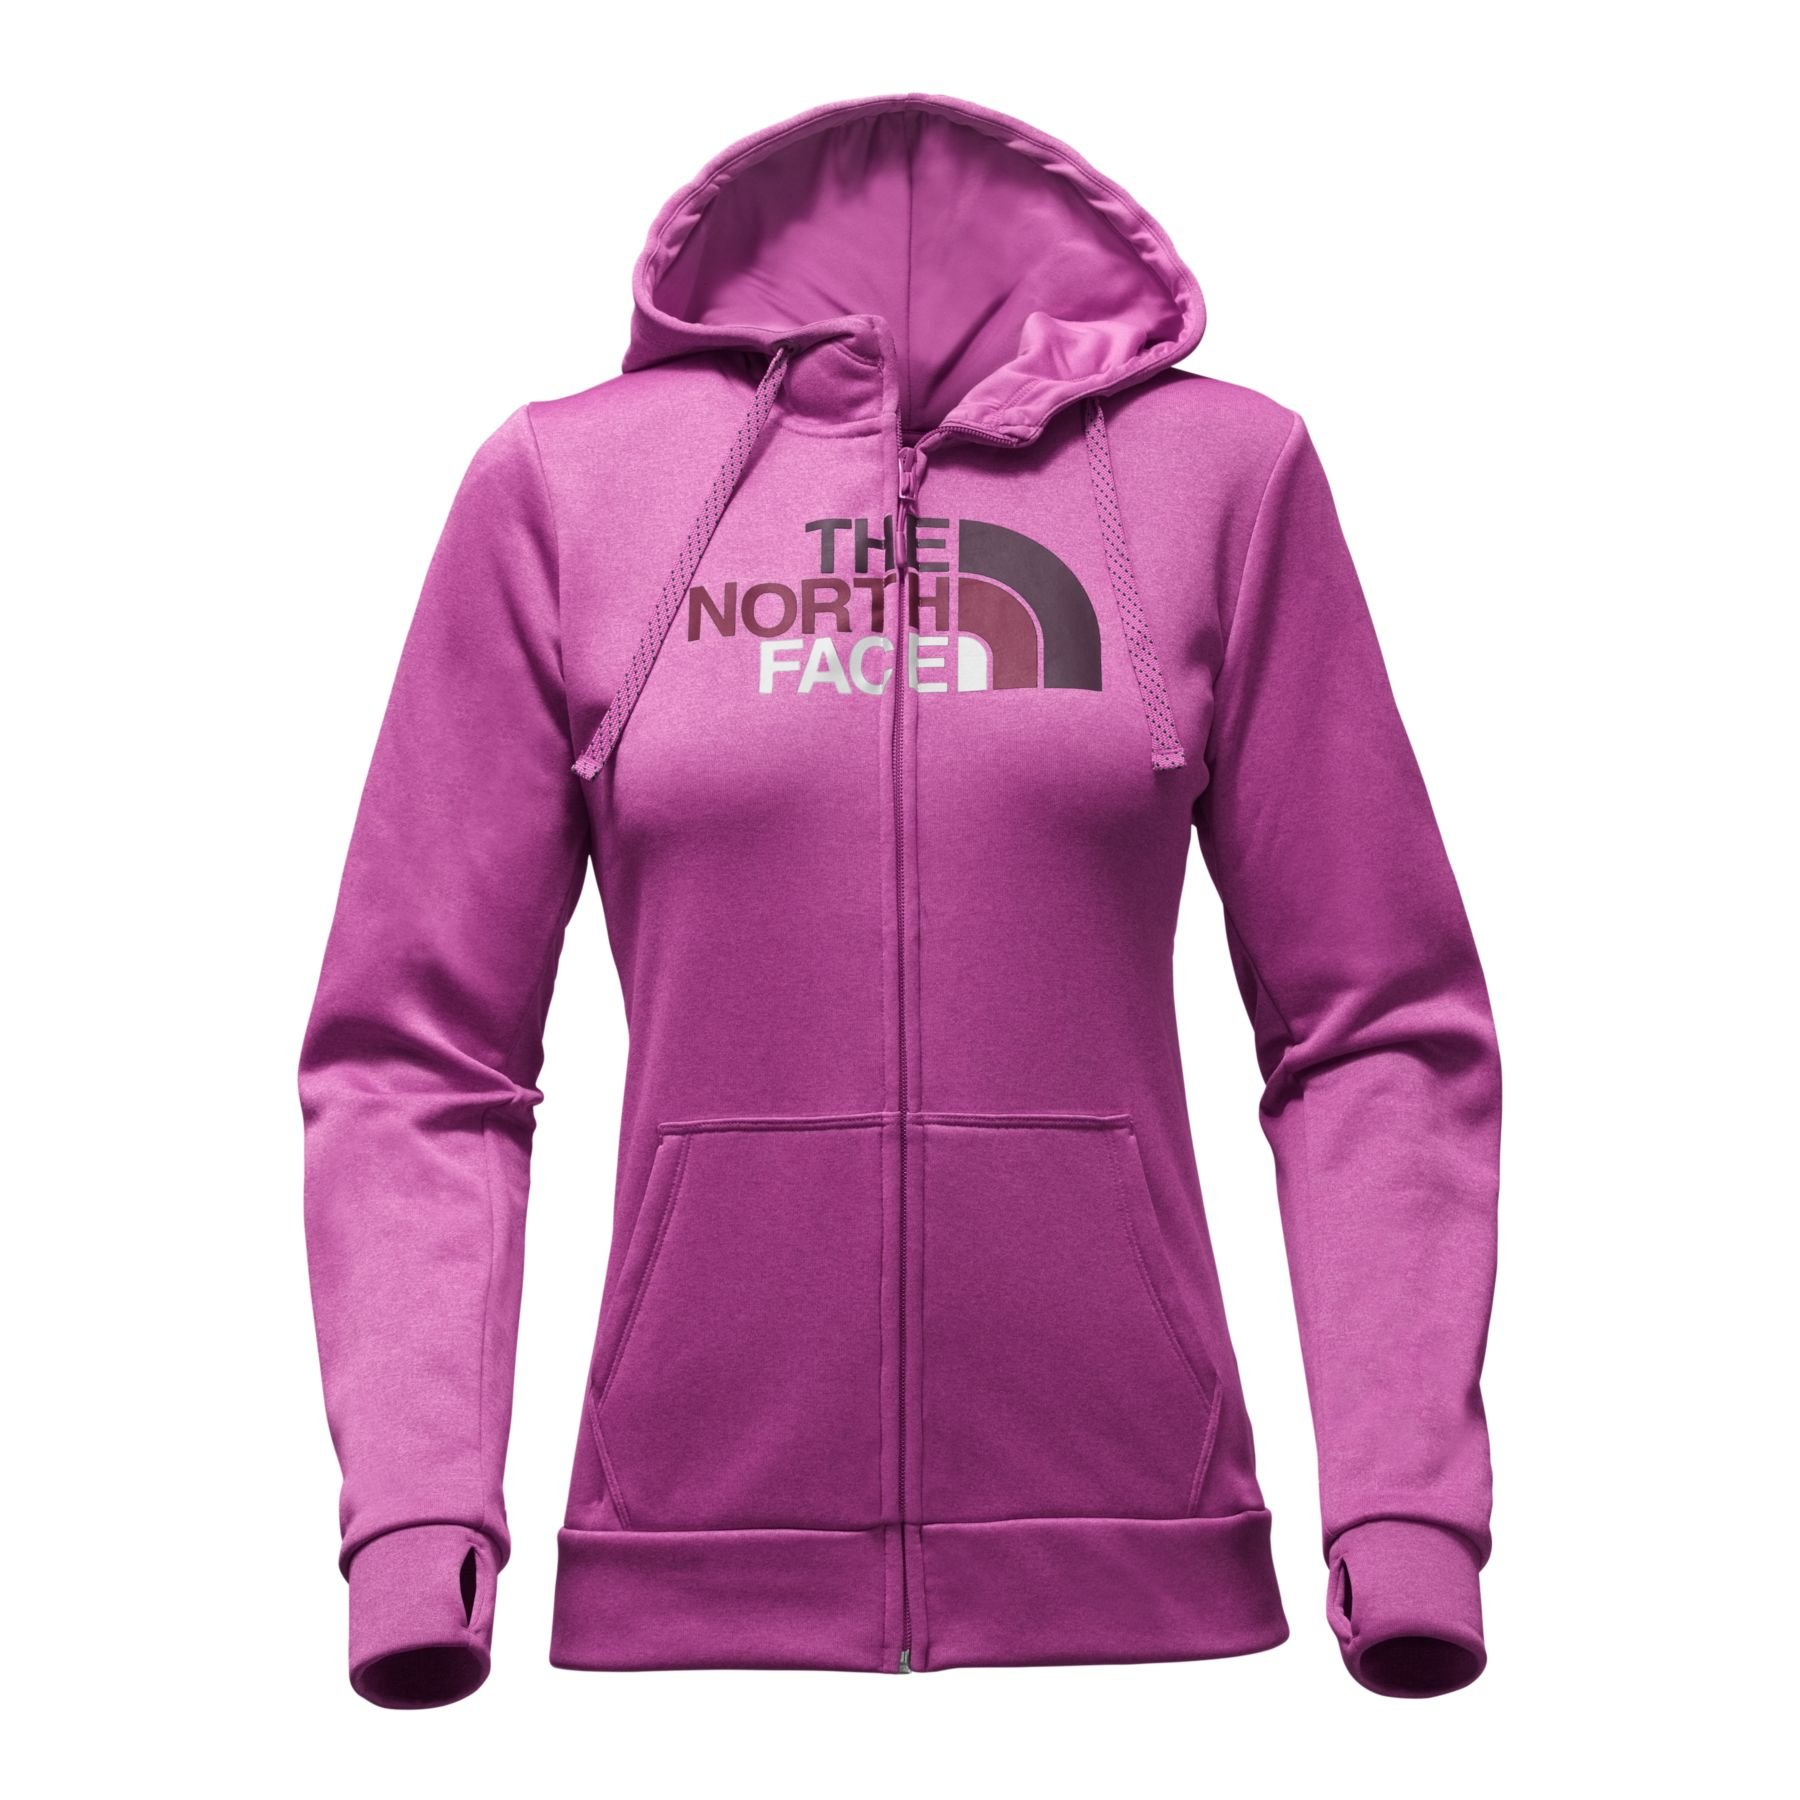 The North Face Women's Fave Half Dome Full Zip Hoodie 2.0 - Wild Aster Purple & Galaxy Print Multi - L